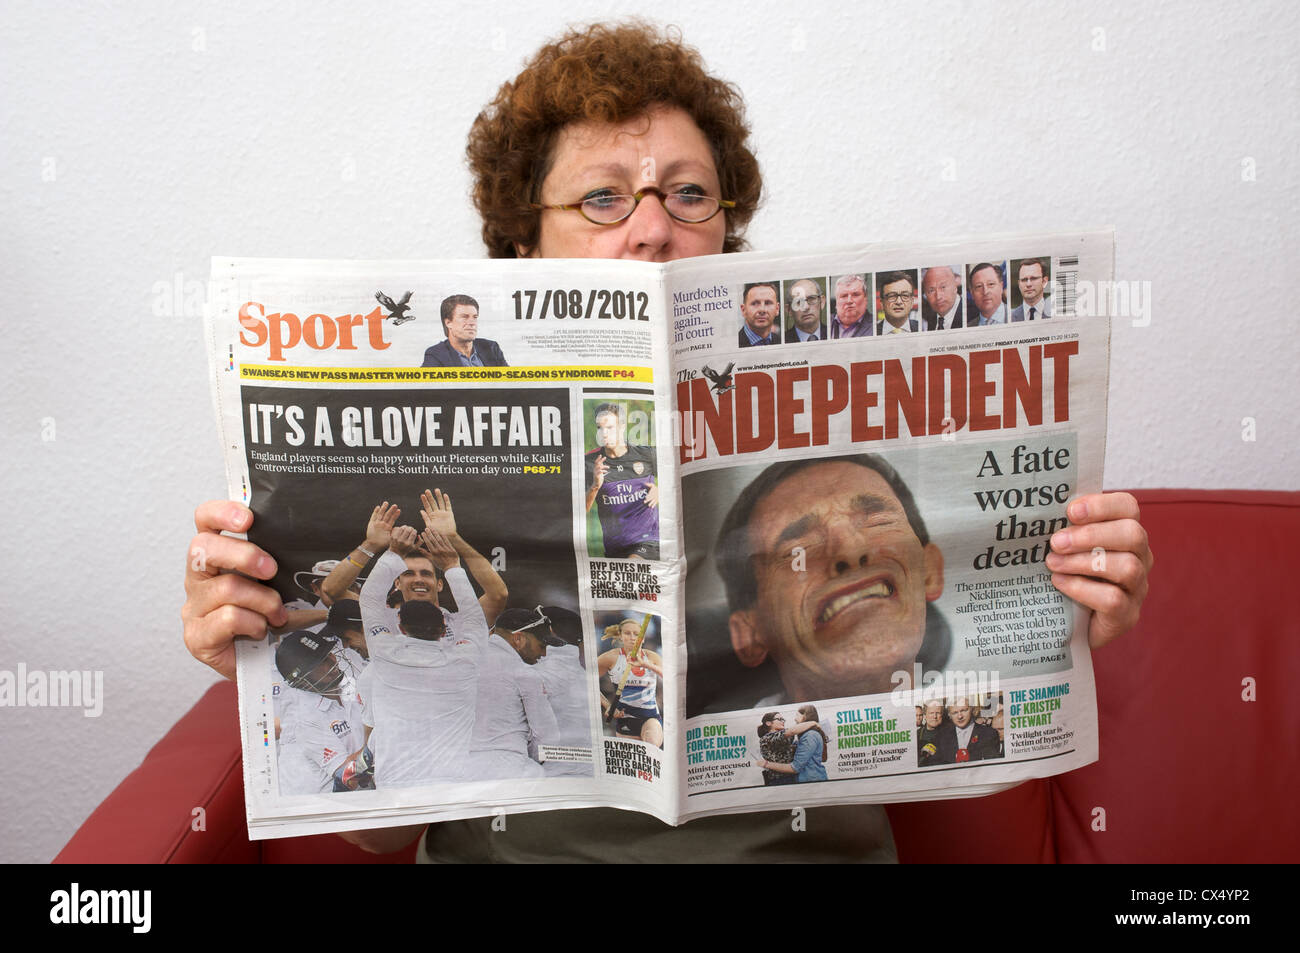 The Independent newspaper with the headline 'a fate worse than death' Stock Photo